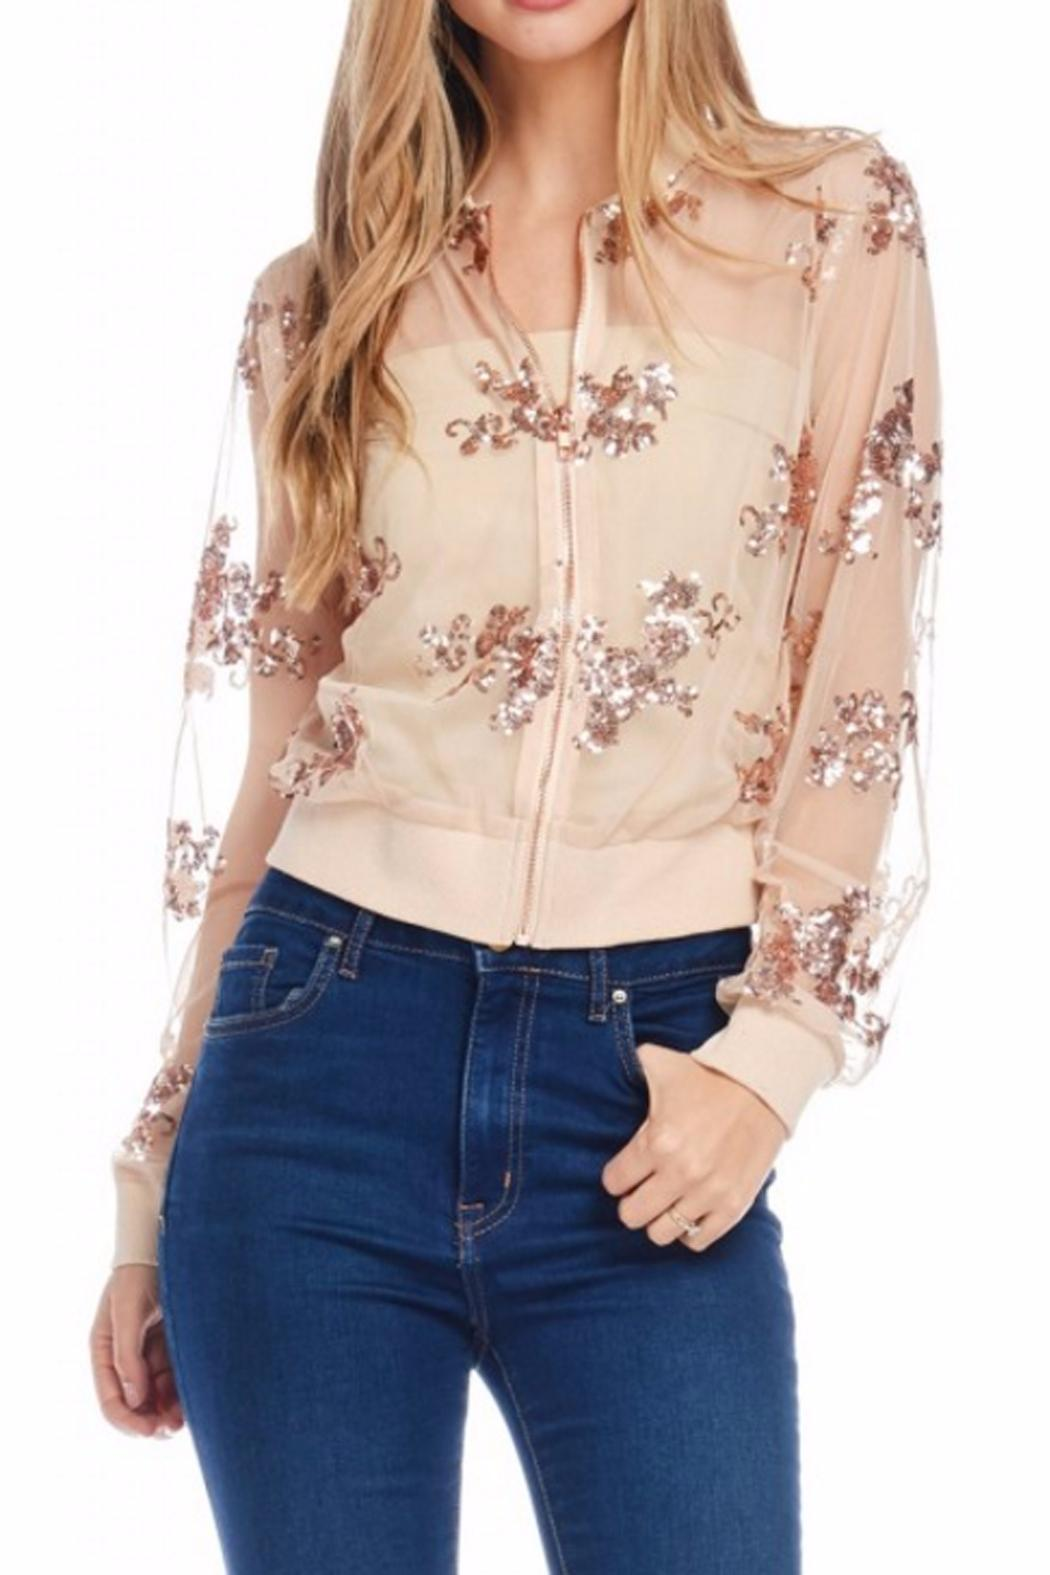 Gina Louise Cropped Sequin Jacket - Front Cropped Image